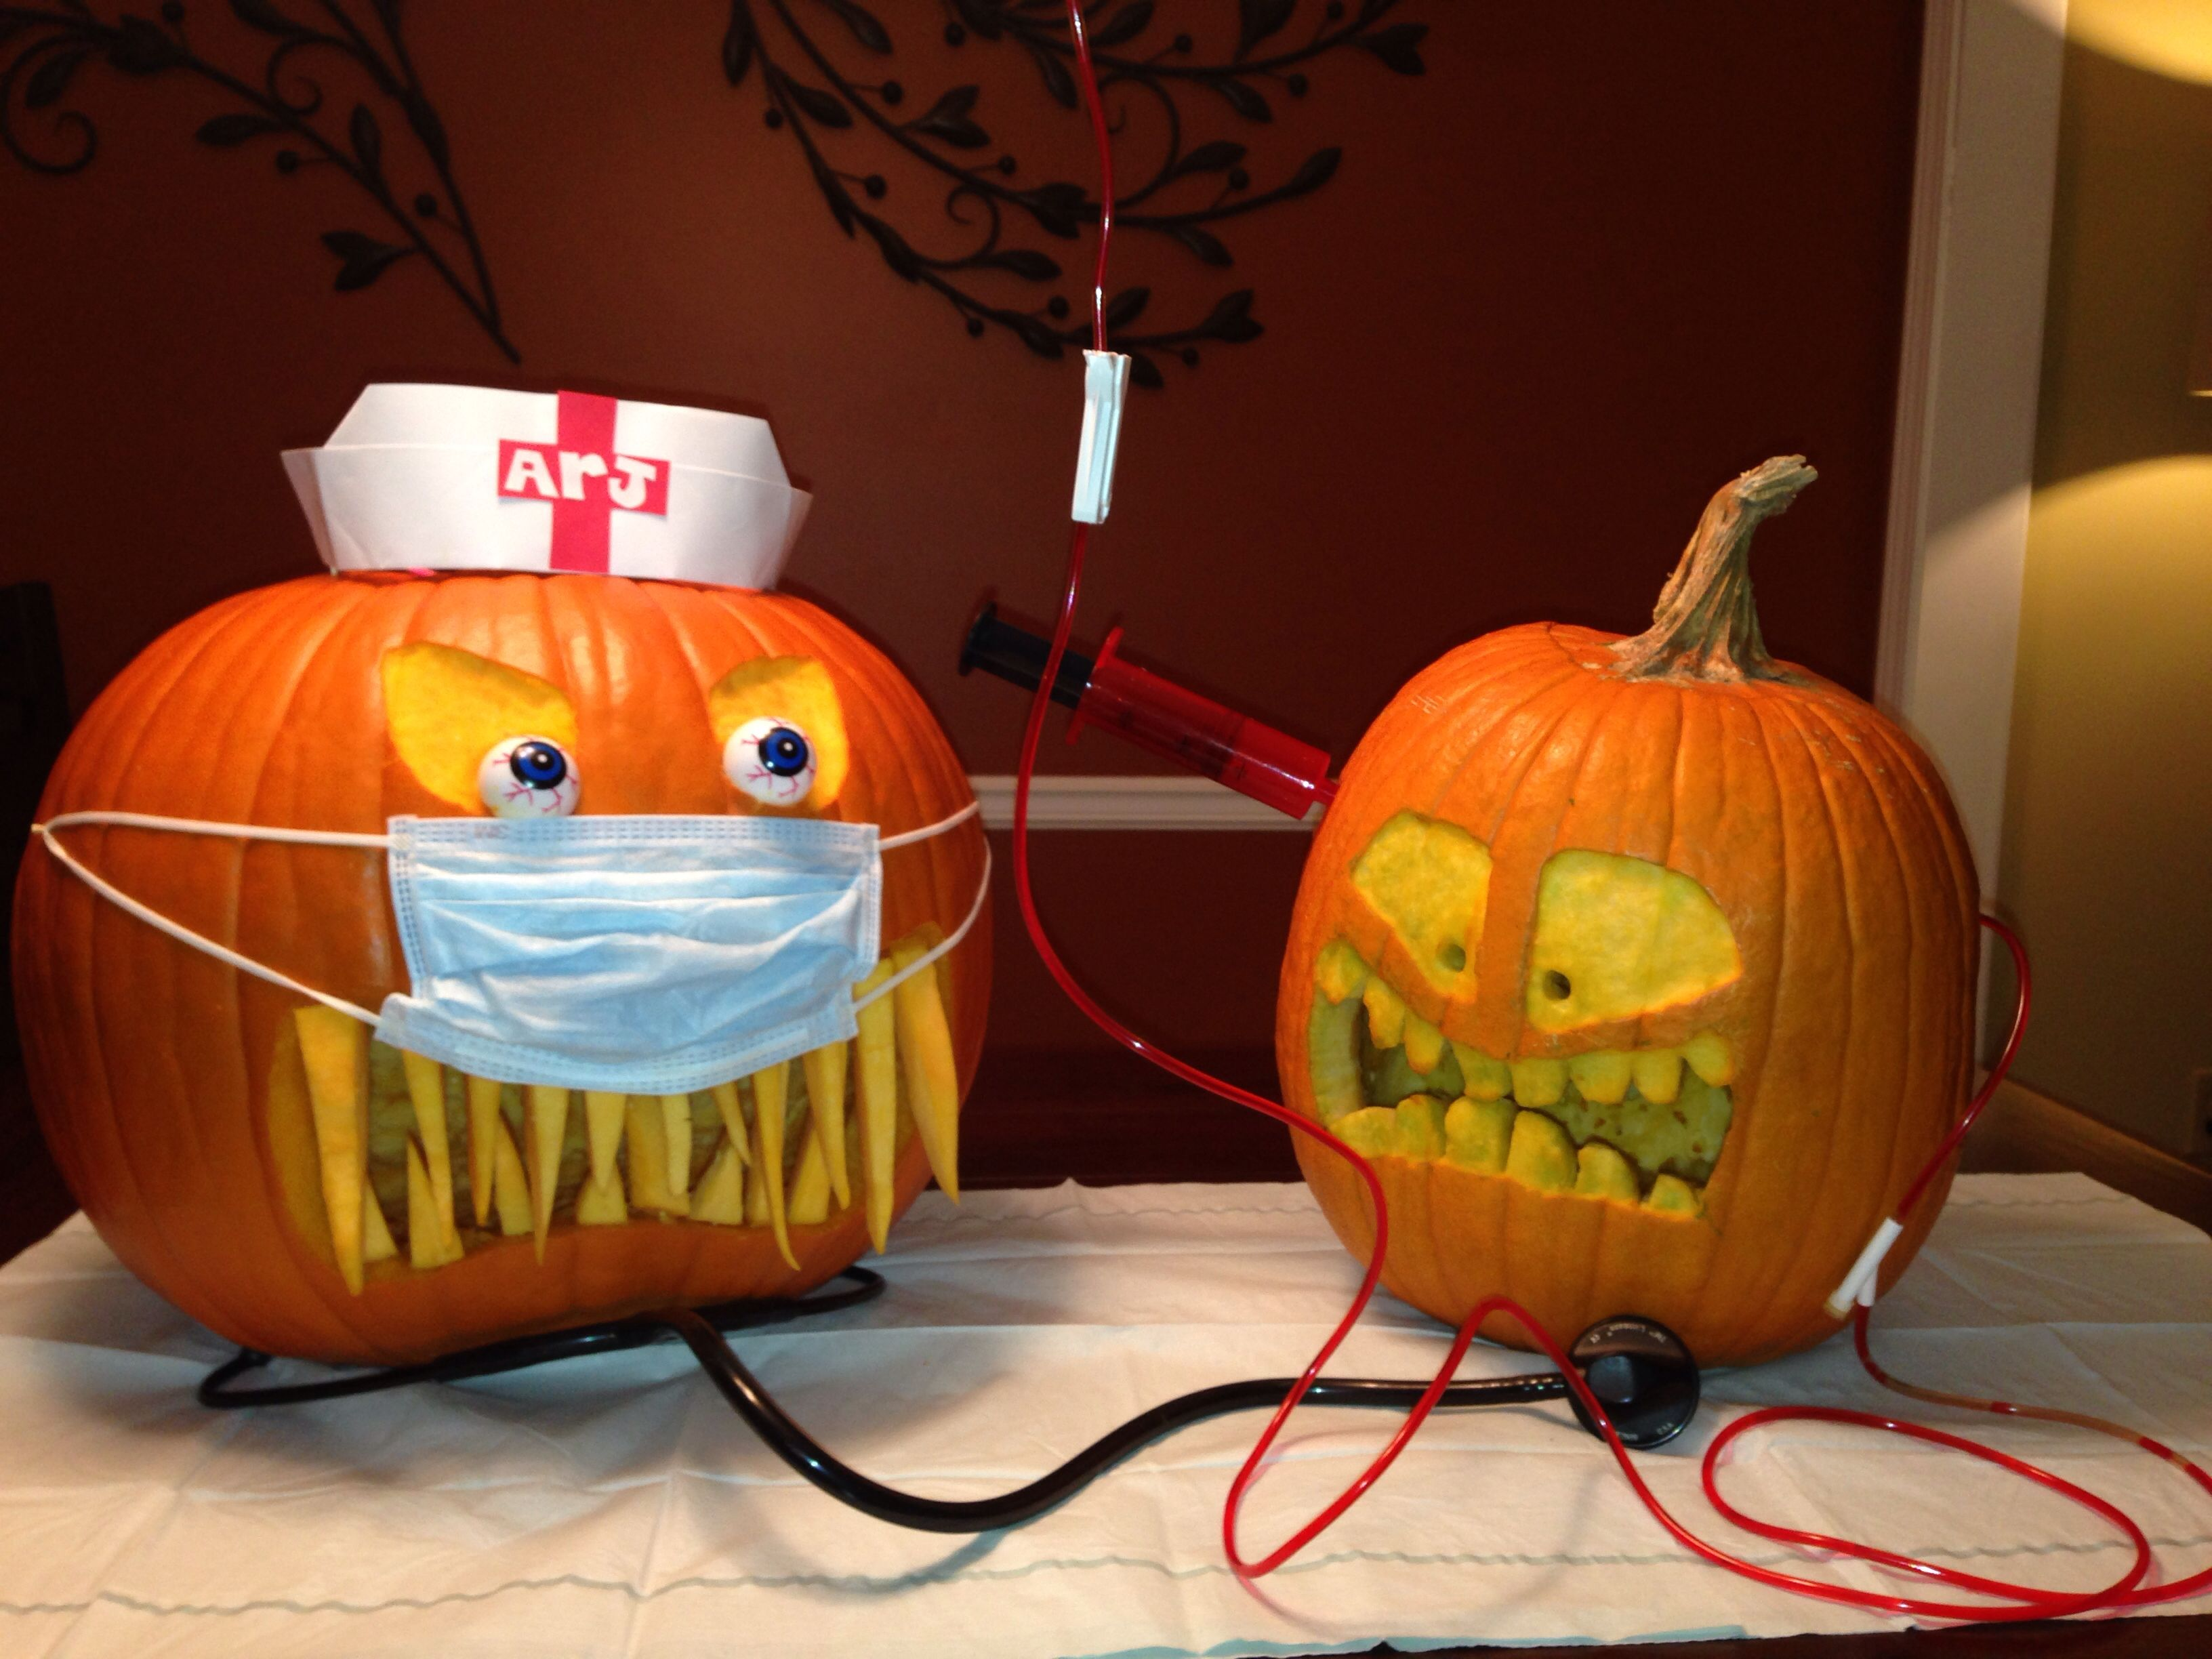 Halloween Decorated Pumpkin: medical office, colonoscopy, patient ...